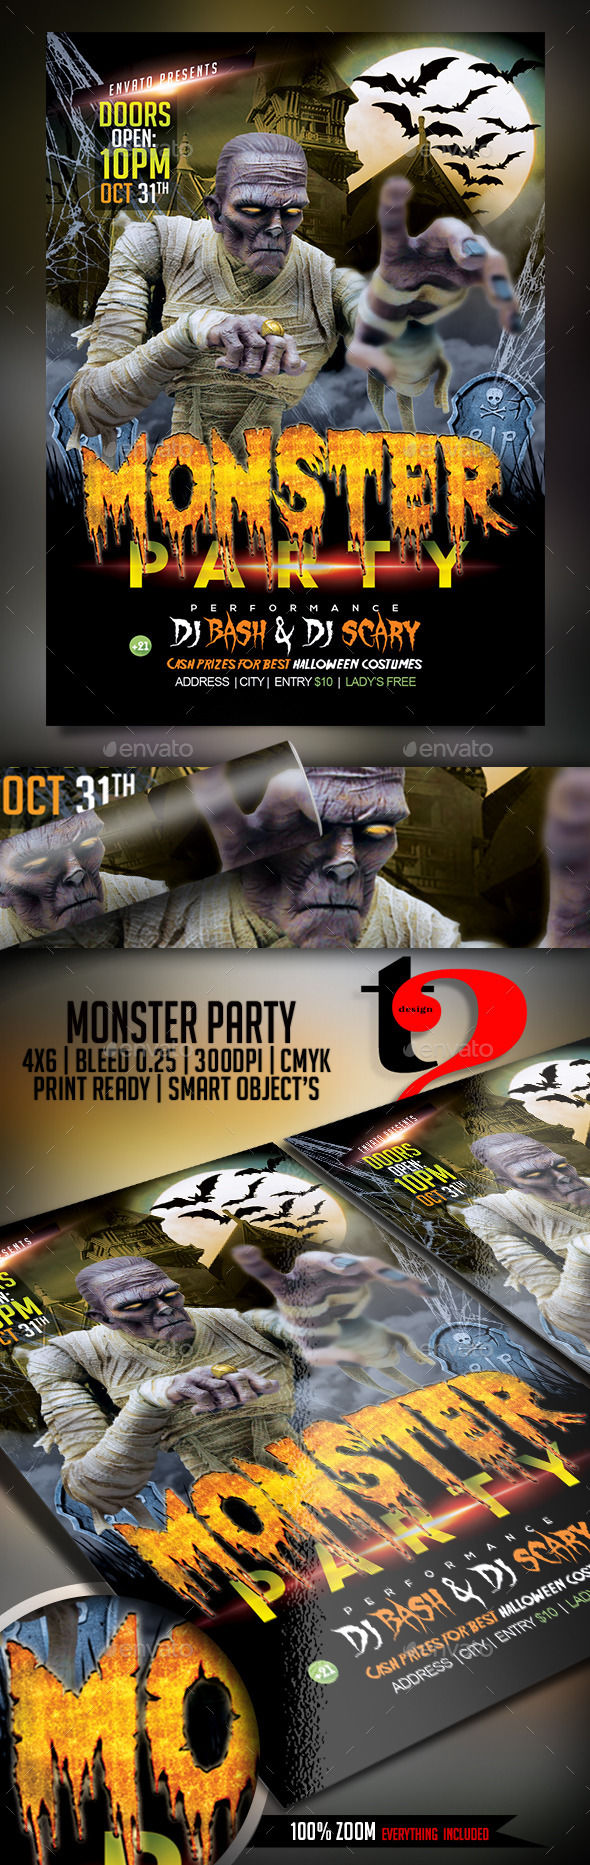 Monster Party by Take2Design (Halloween party flyer)